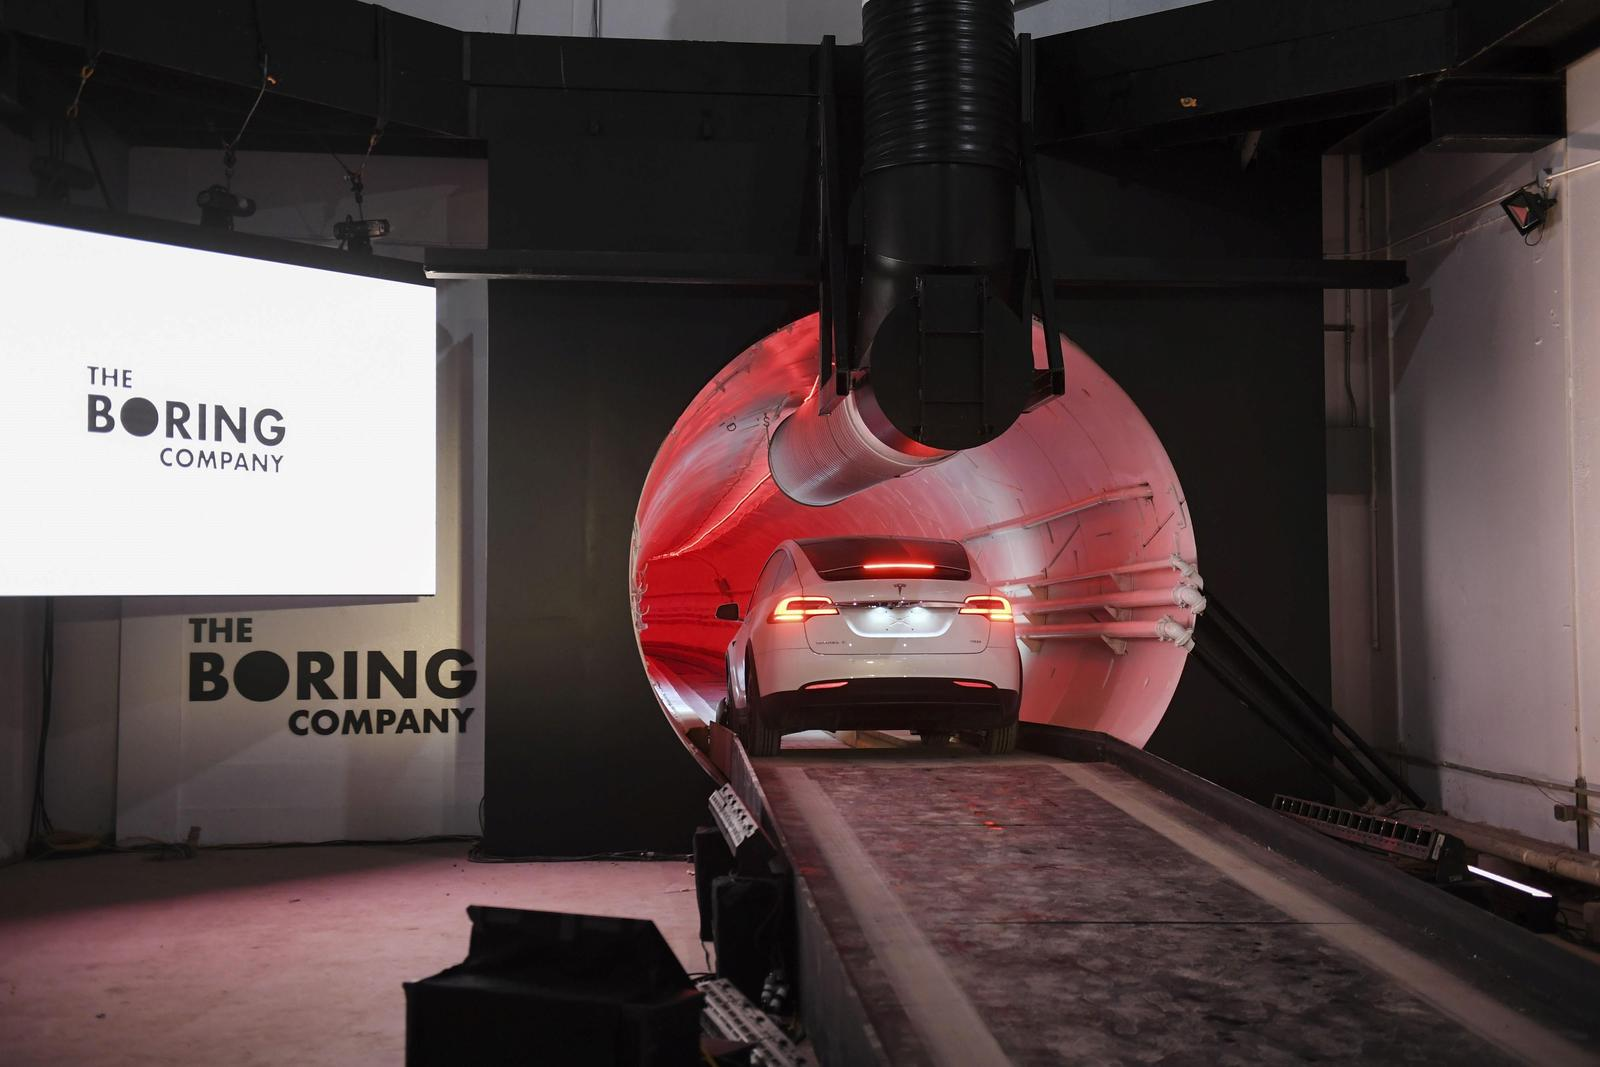 The Boring Company's Hyperloop may become operational by 2021 ...